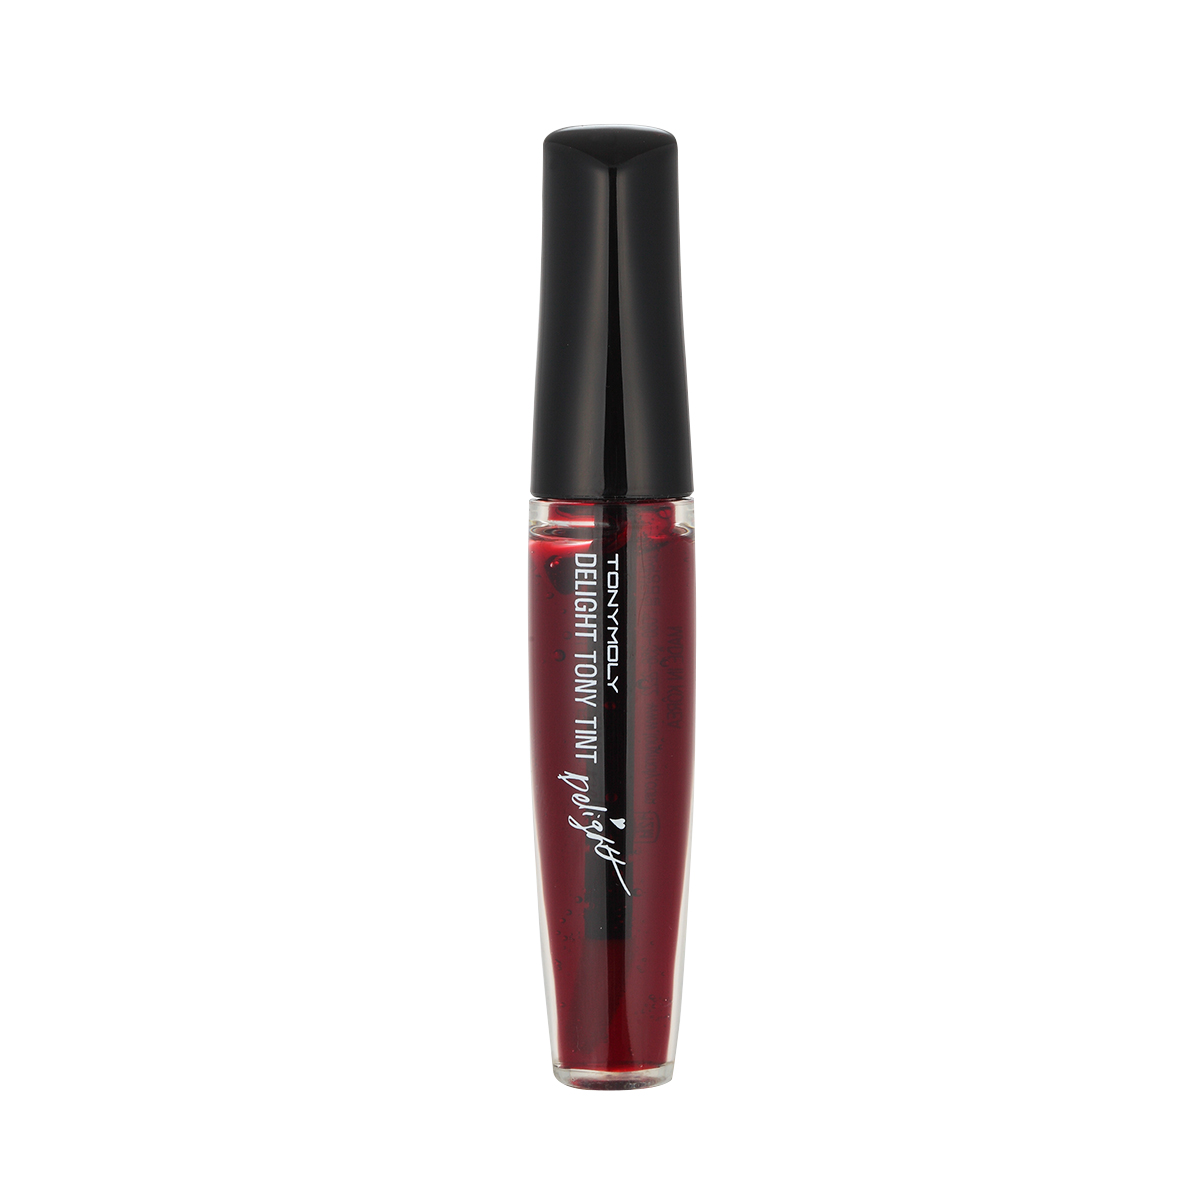 Lip tint, $15, similar here - Although it may look like a rich red nail polish at first glance, it's actually a sexy red lip tint. The packaging is unique and the product itself is great.It was a similar sensation to putting on a nice coating of nail polish—so very fitting packaging—as the product went on extremely smoothly and had a concentrated color. They mean it when they say it makes your lips pop! I loved that even though it felt wet at first, it dried nicely, leaving a color that lasted. I appreciated that my lips didn't feel or look greasy, but rather looked soft and moisturized.—S.S.